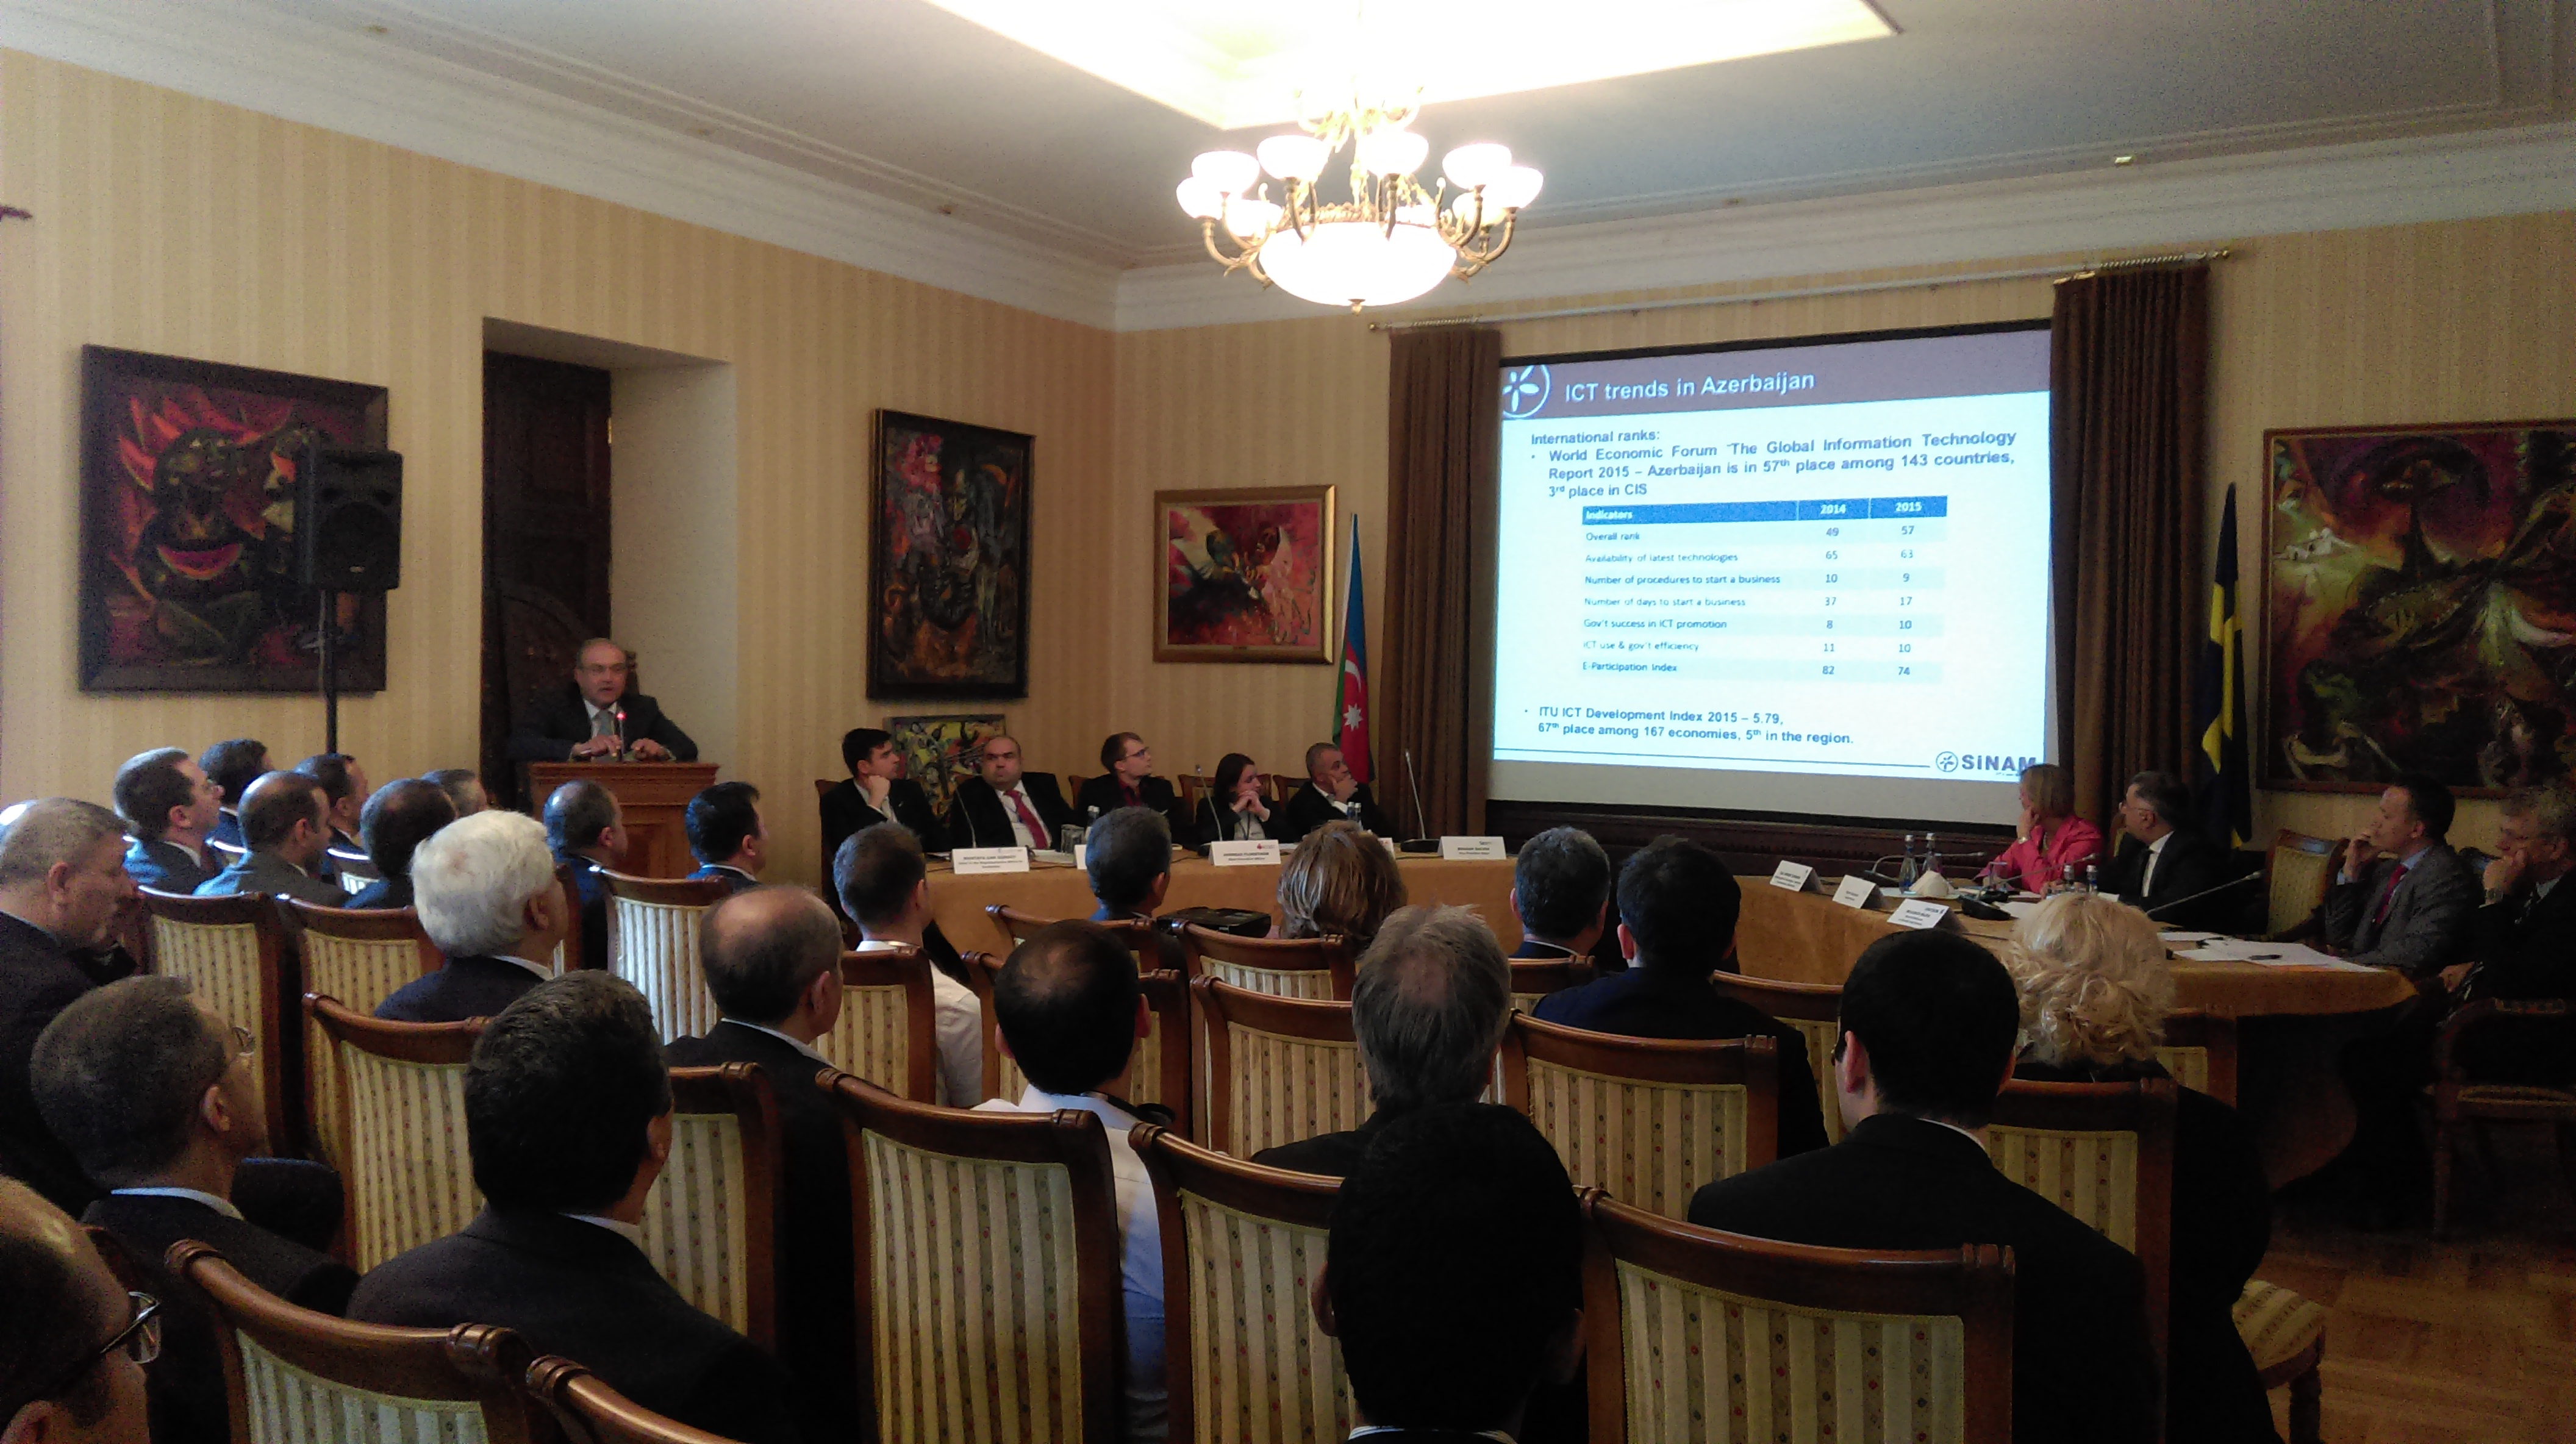 The president of SINAM Elchin Aliyev made a speech at Azerbaijan-Sweden business forum on ICT